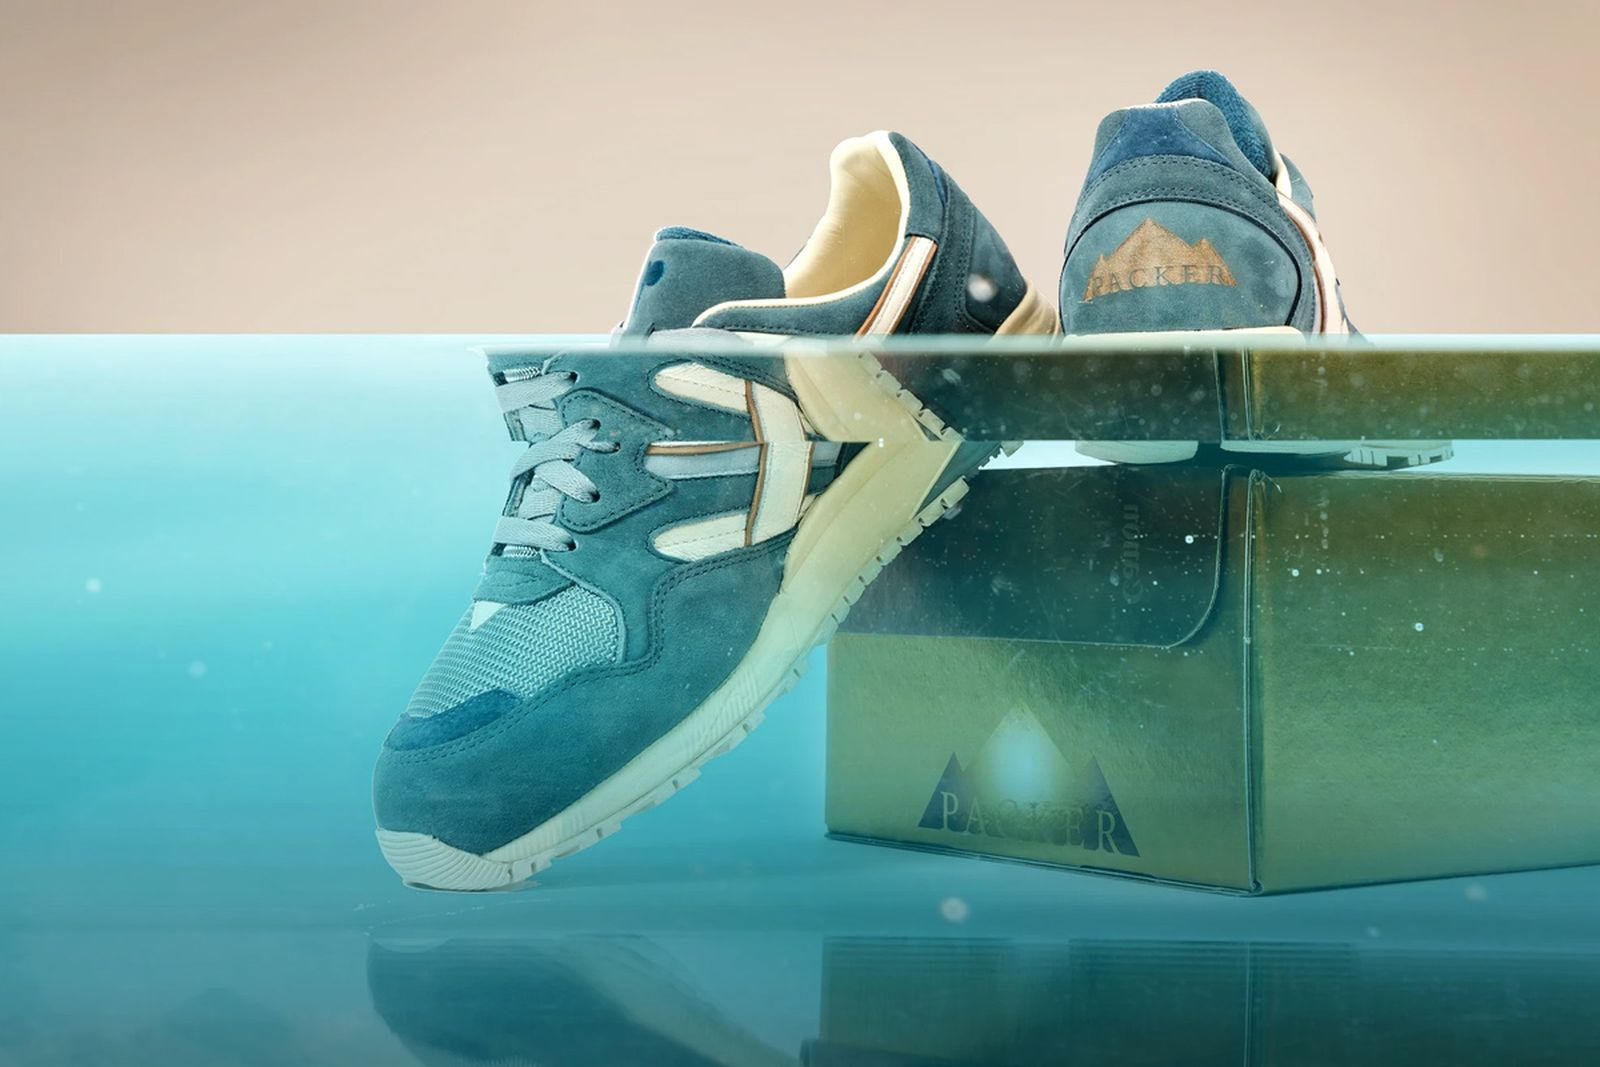 packer-diadora-n9002-molveno-release-date-price-product-08